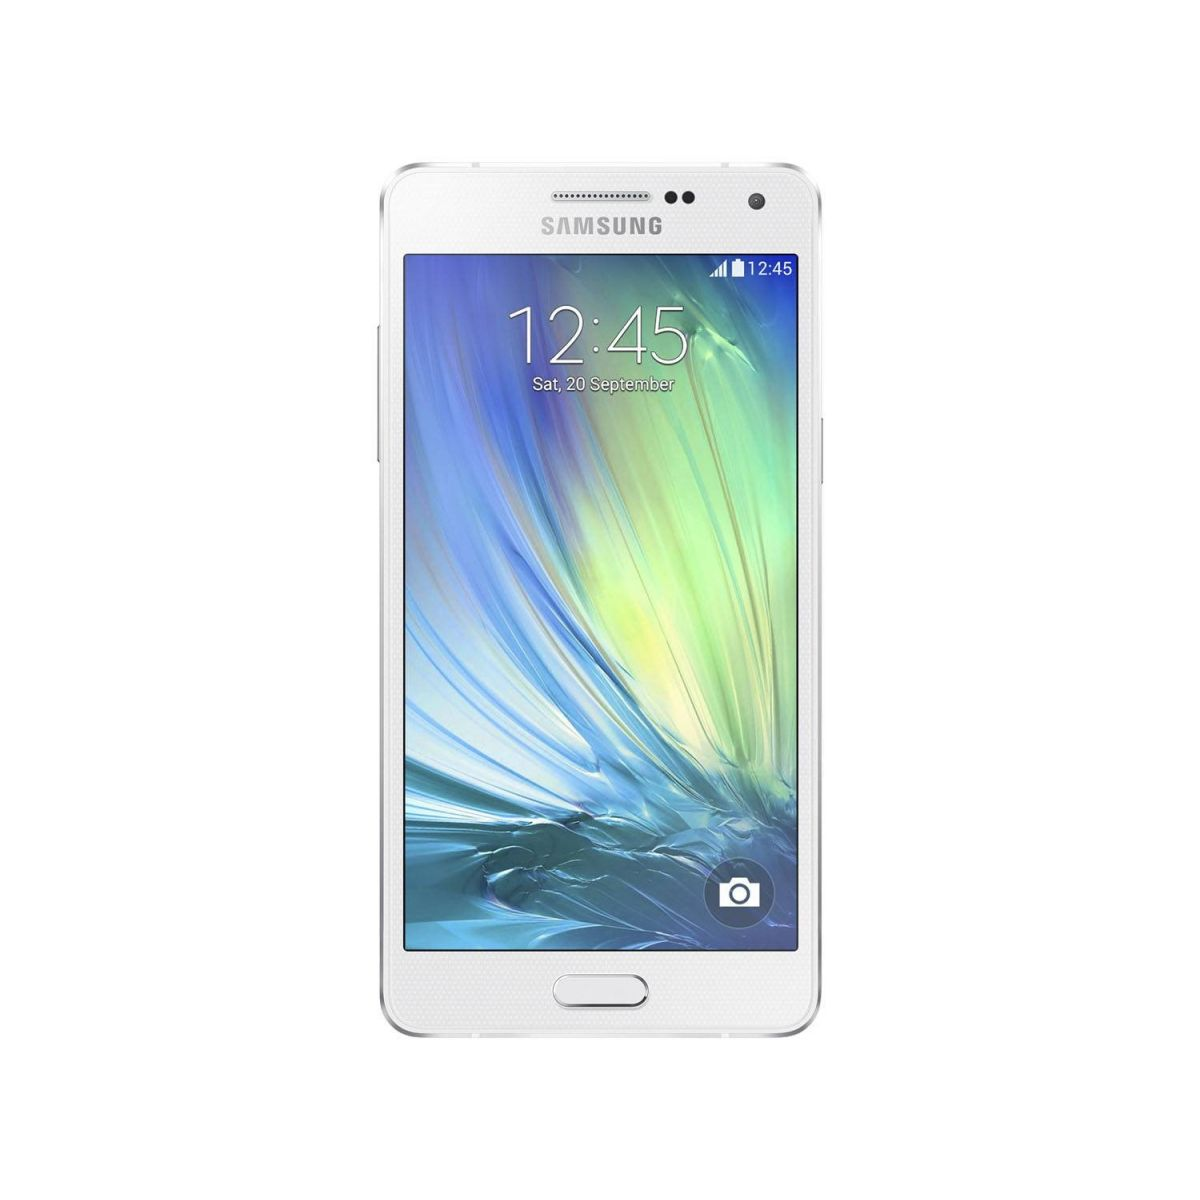 Smartphone Galaxy A5 Duos Dual Chip 4G Android 4.4 C�m. 13MP Tela 5 Proc. Quad Core Branco SM-A500M/DS - Samsung